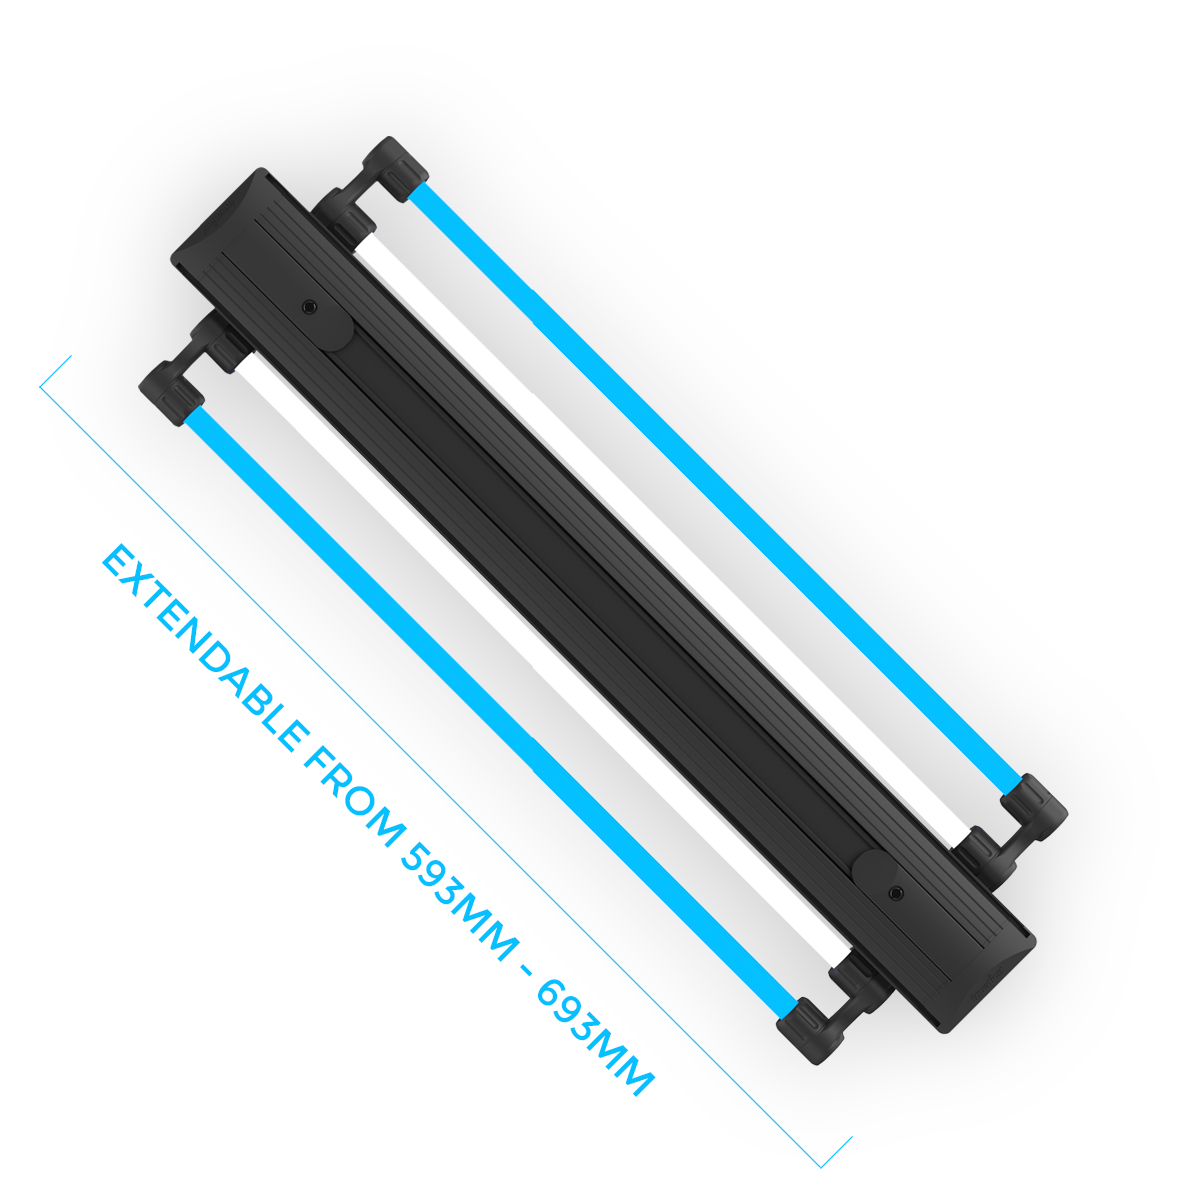 IQuatics AquaLumi Universal-2 Tube 60cm-Extending T5 Light